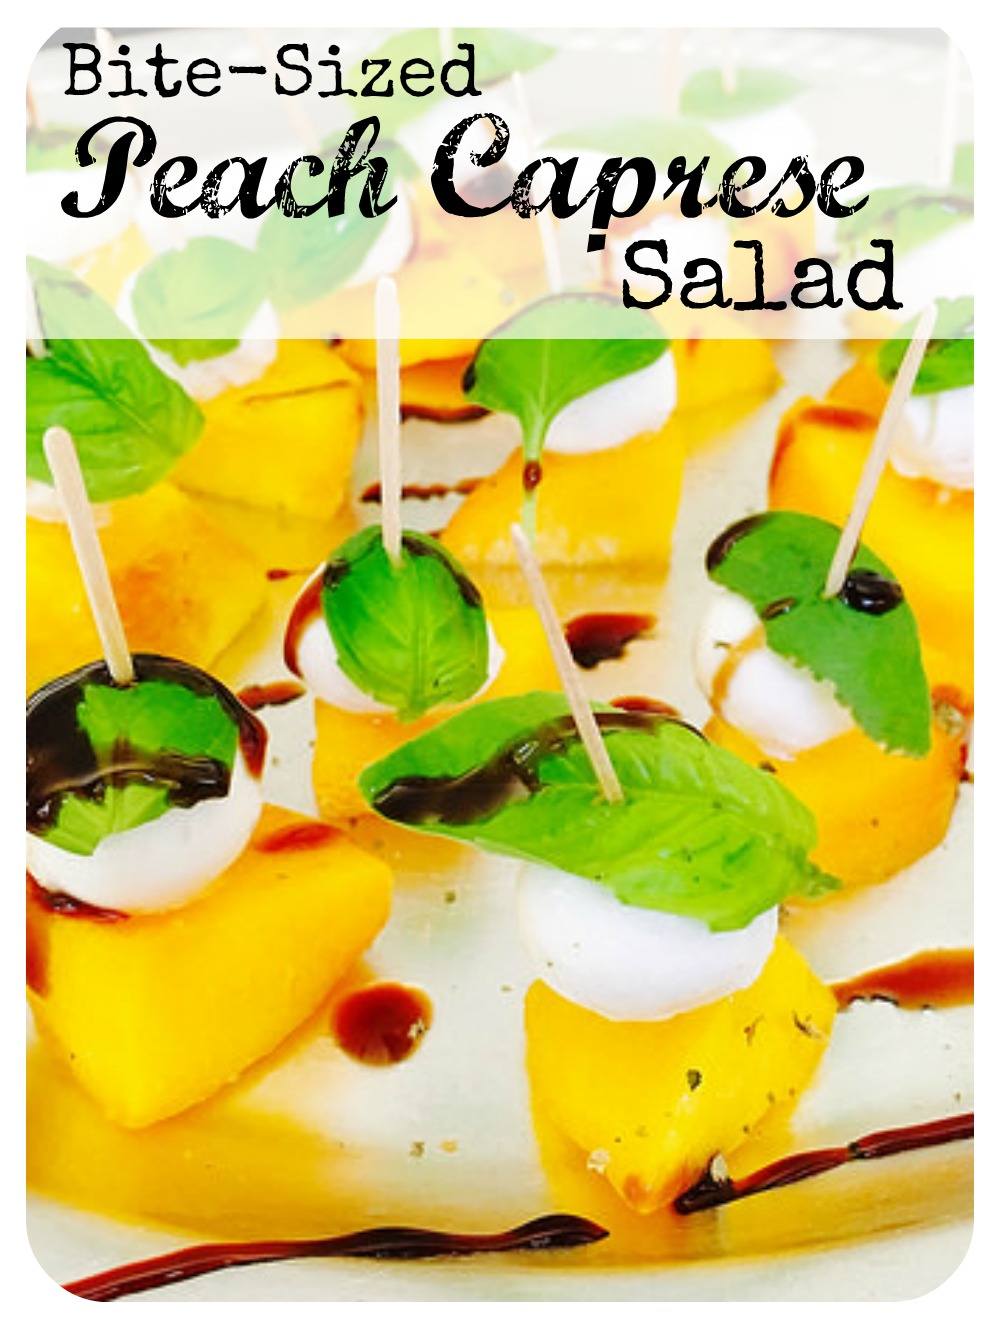 Bite-Sized Peach Caprese Salad - perfect gluten-free, Vegetarian finger food for a summer gathering!